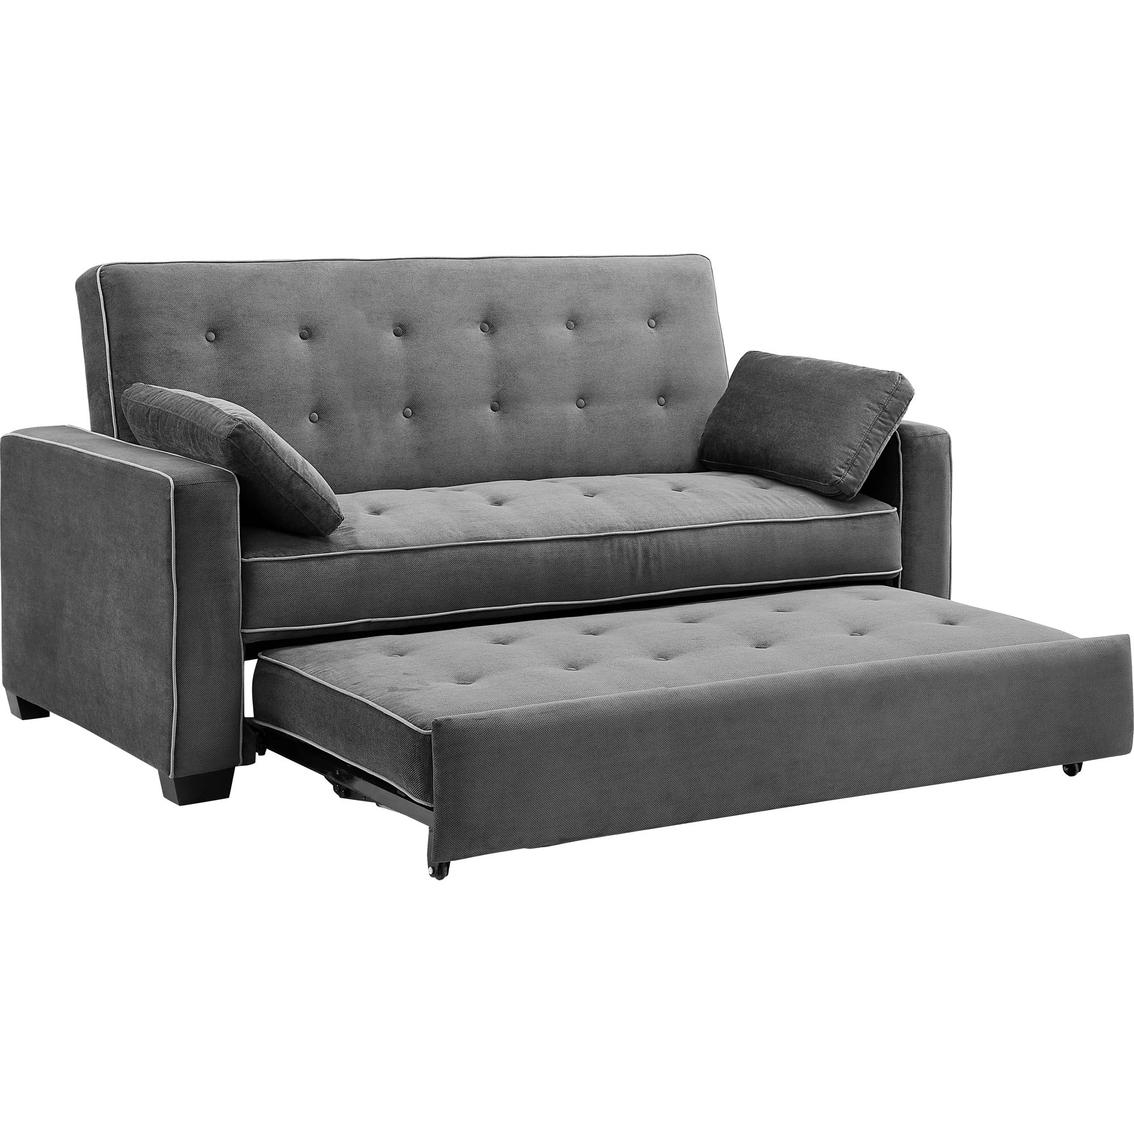 Queen Size Sleeper Sofa – Interior Design In Queen Convertible Sofas (Image 10 of 20)